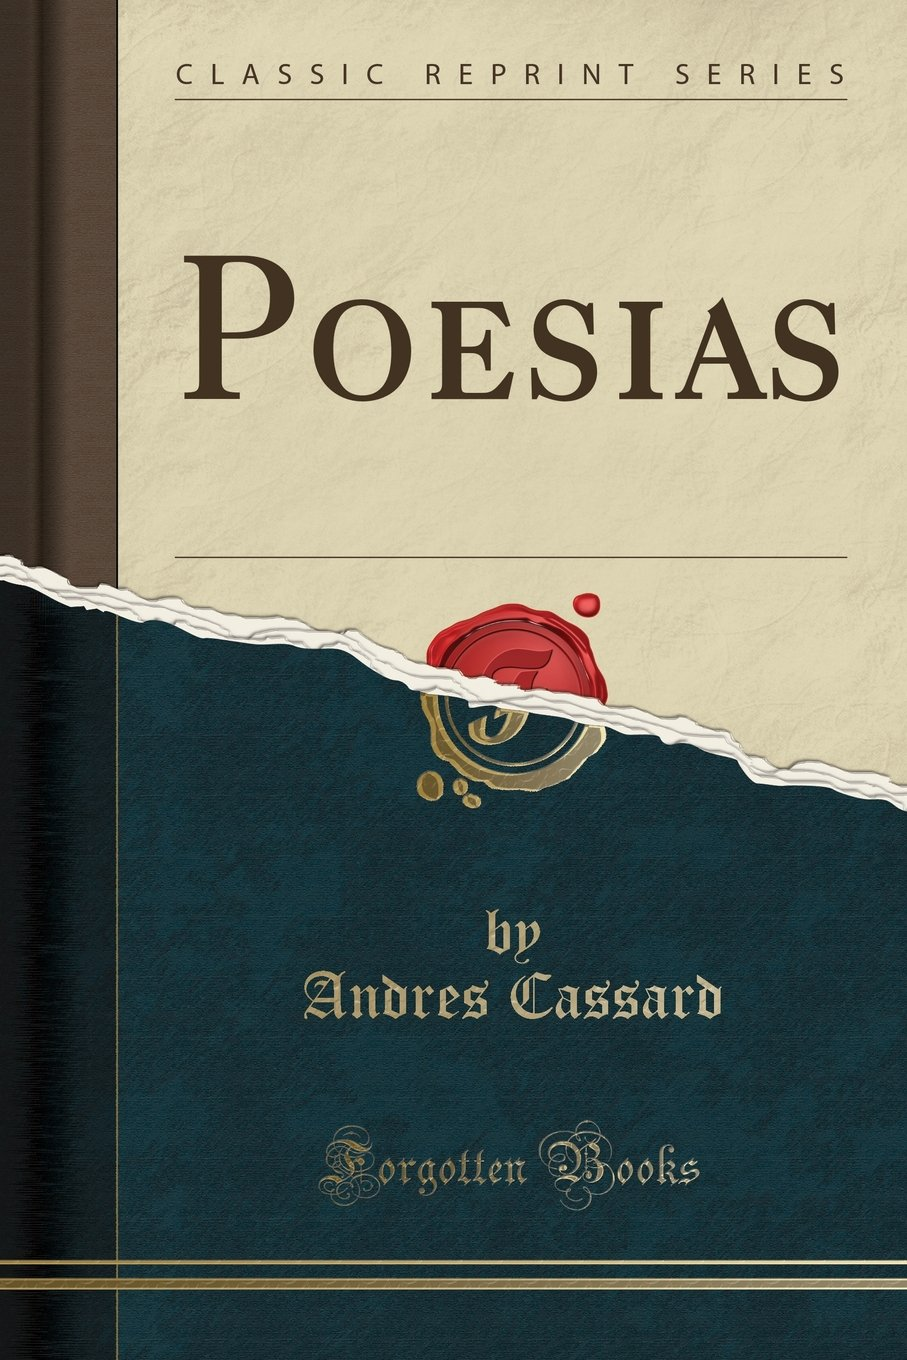 Poesias (Classic Reprint) (Spanish Edition) (Spanish) Paperback – January 23, 2018